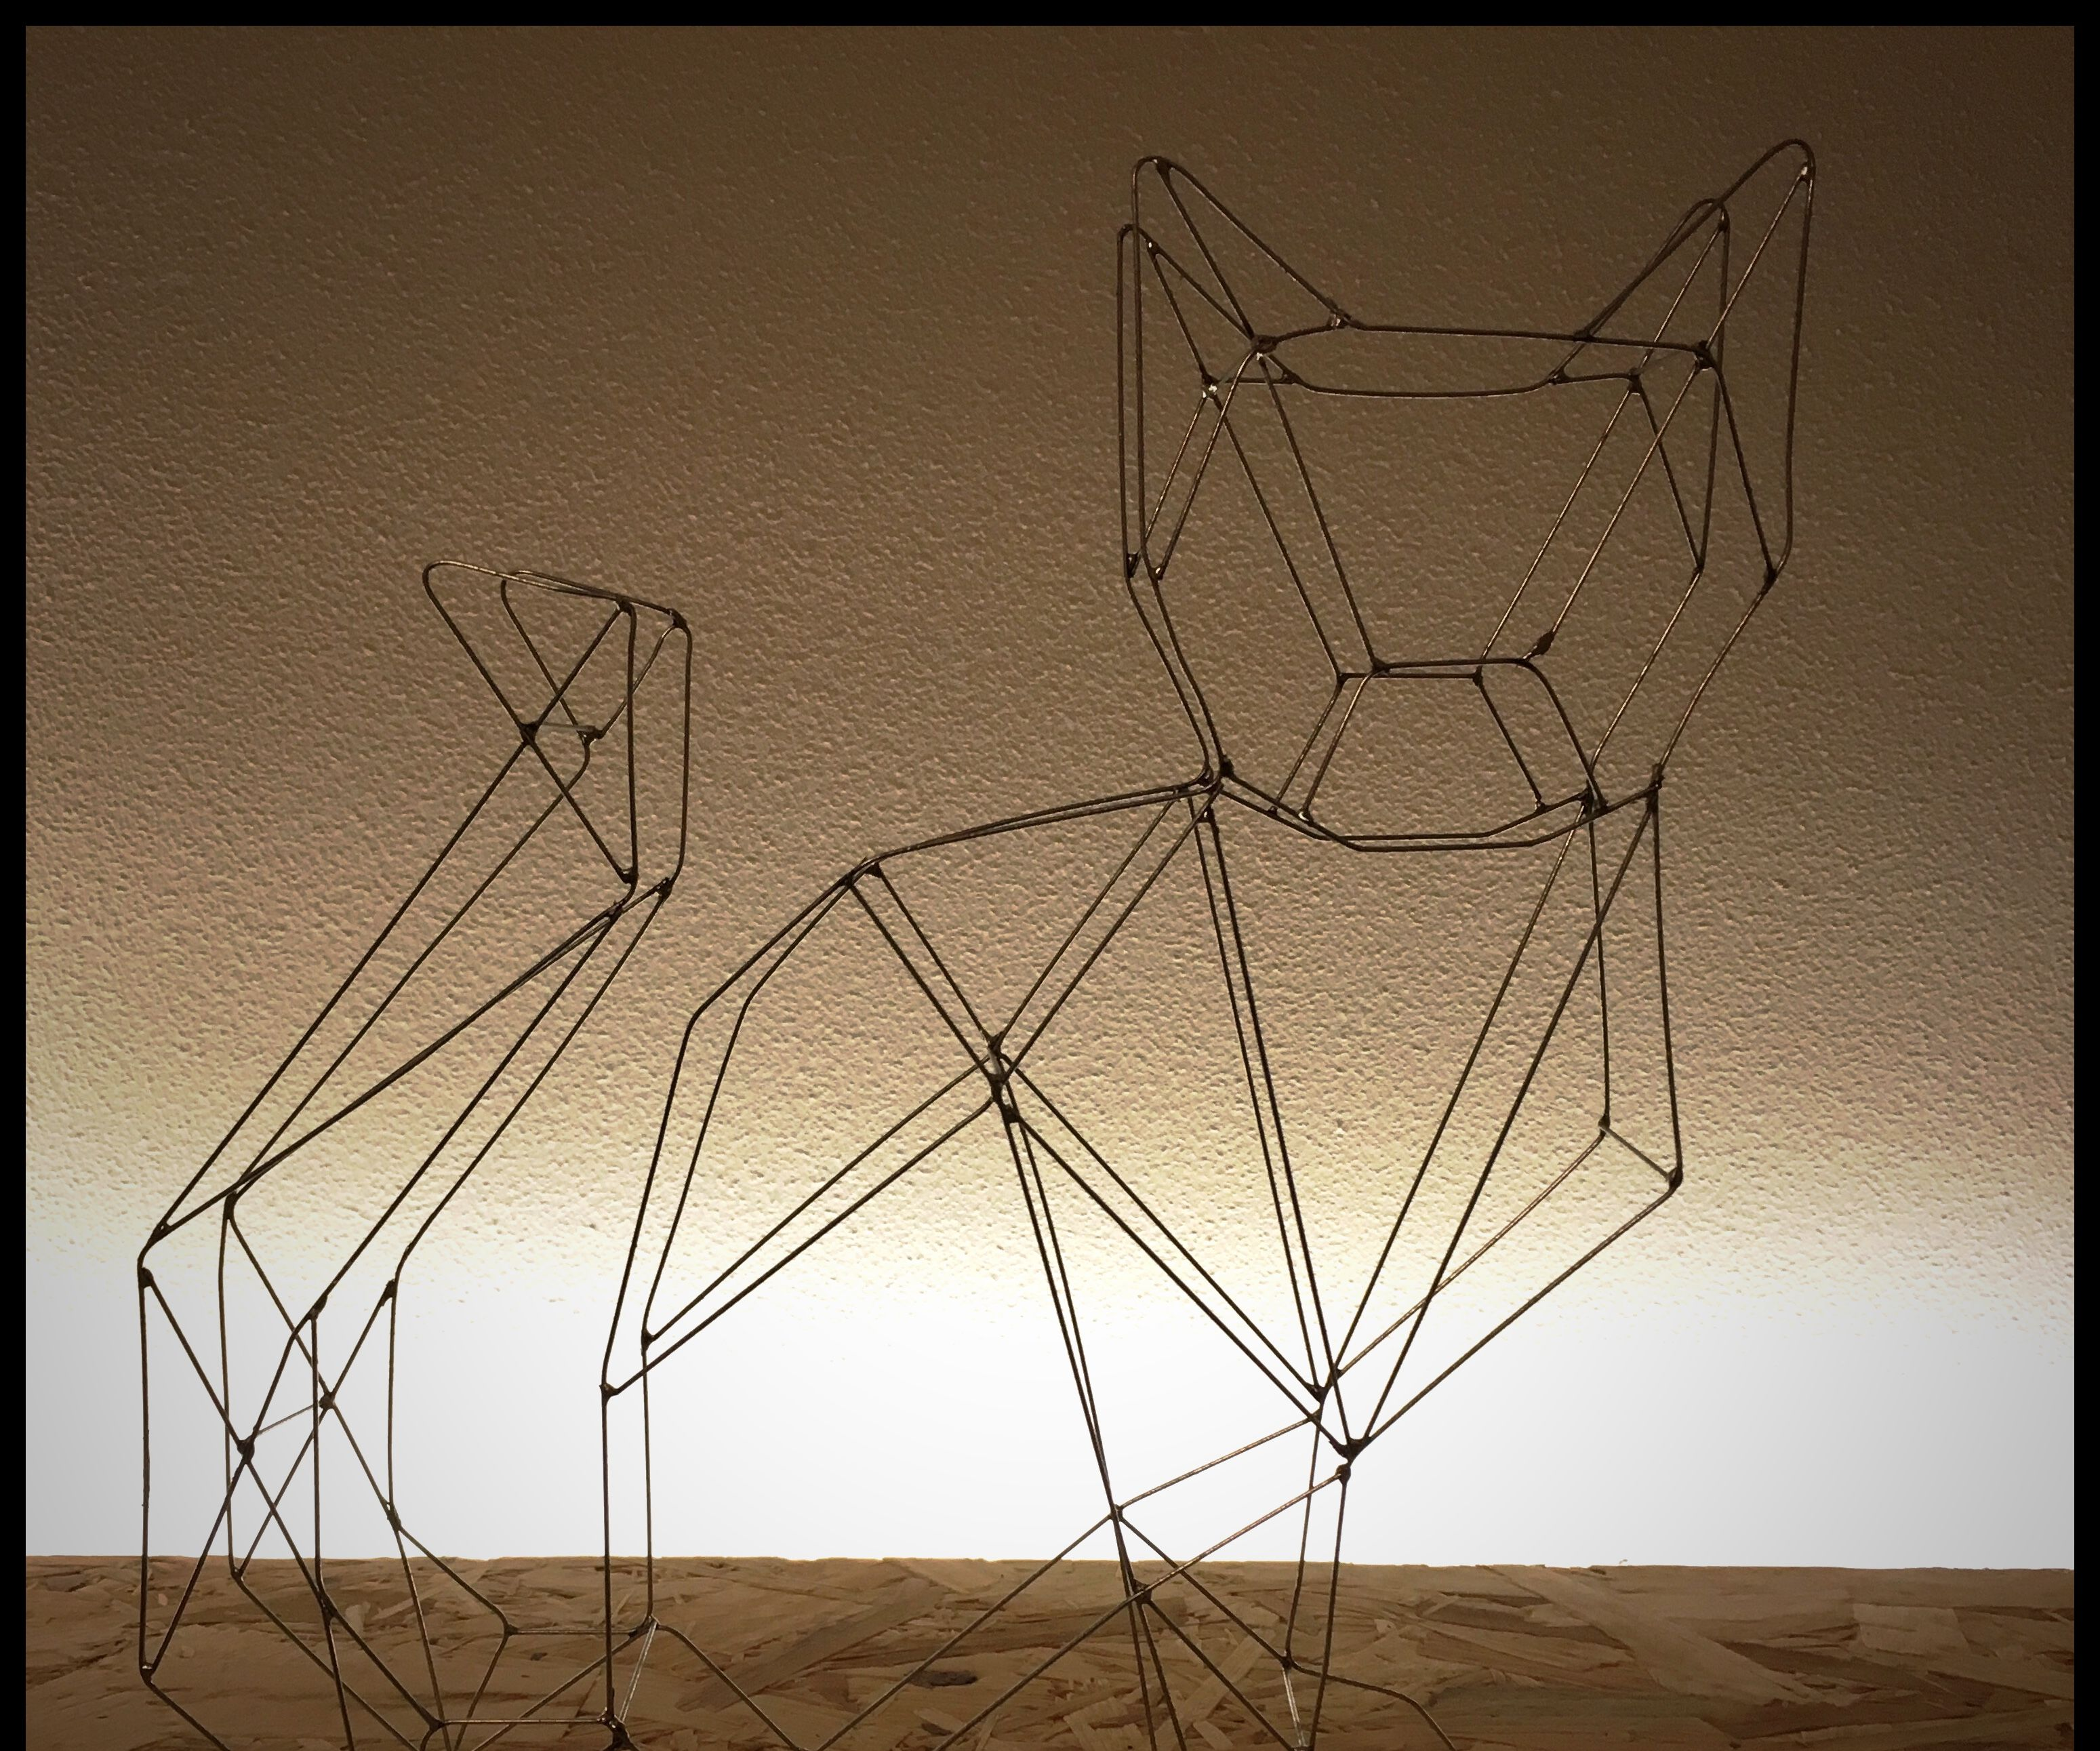 Wire art cat or wire frame cat